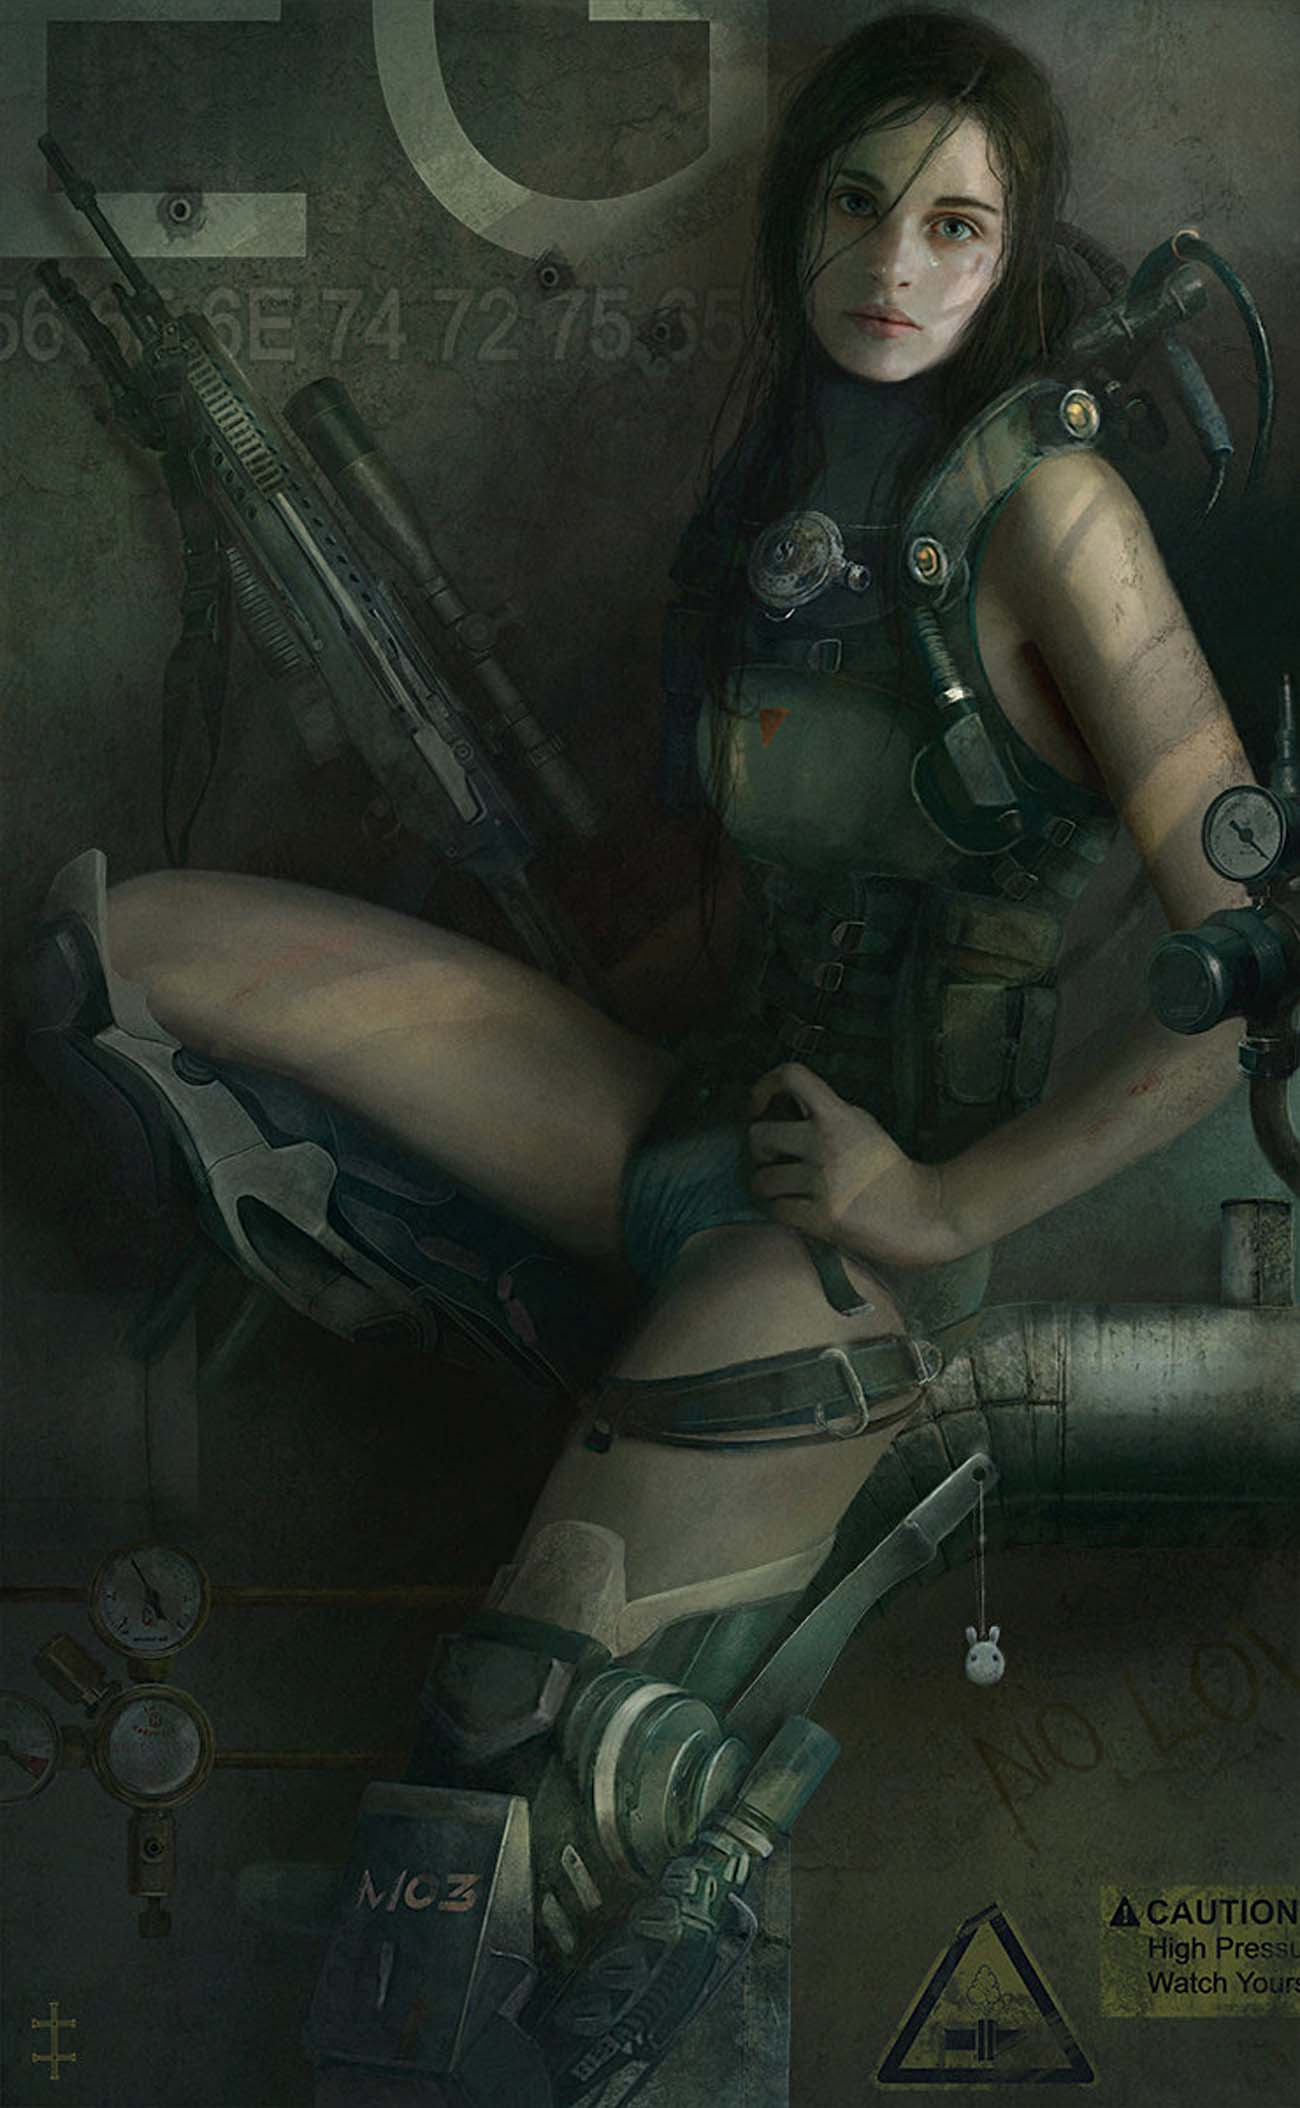 Eve Ventrue | Paintable.cc Digital Painting Inspiration - Learn the Art of Digital Painting! #digitalpainting #digitalart